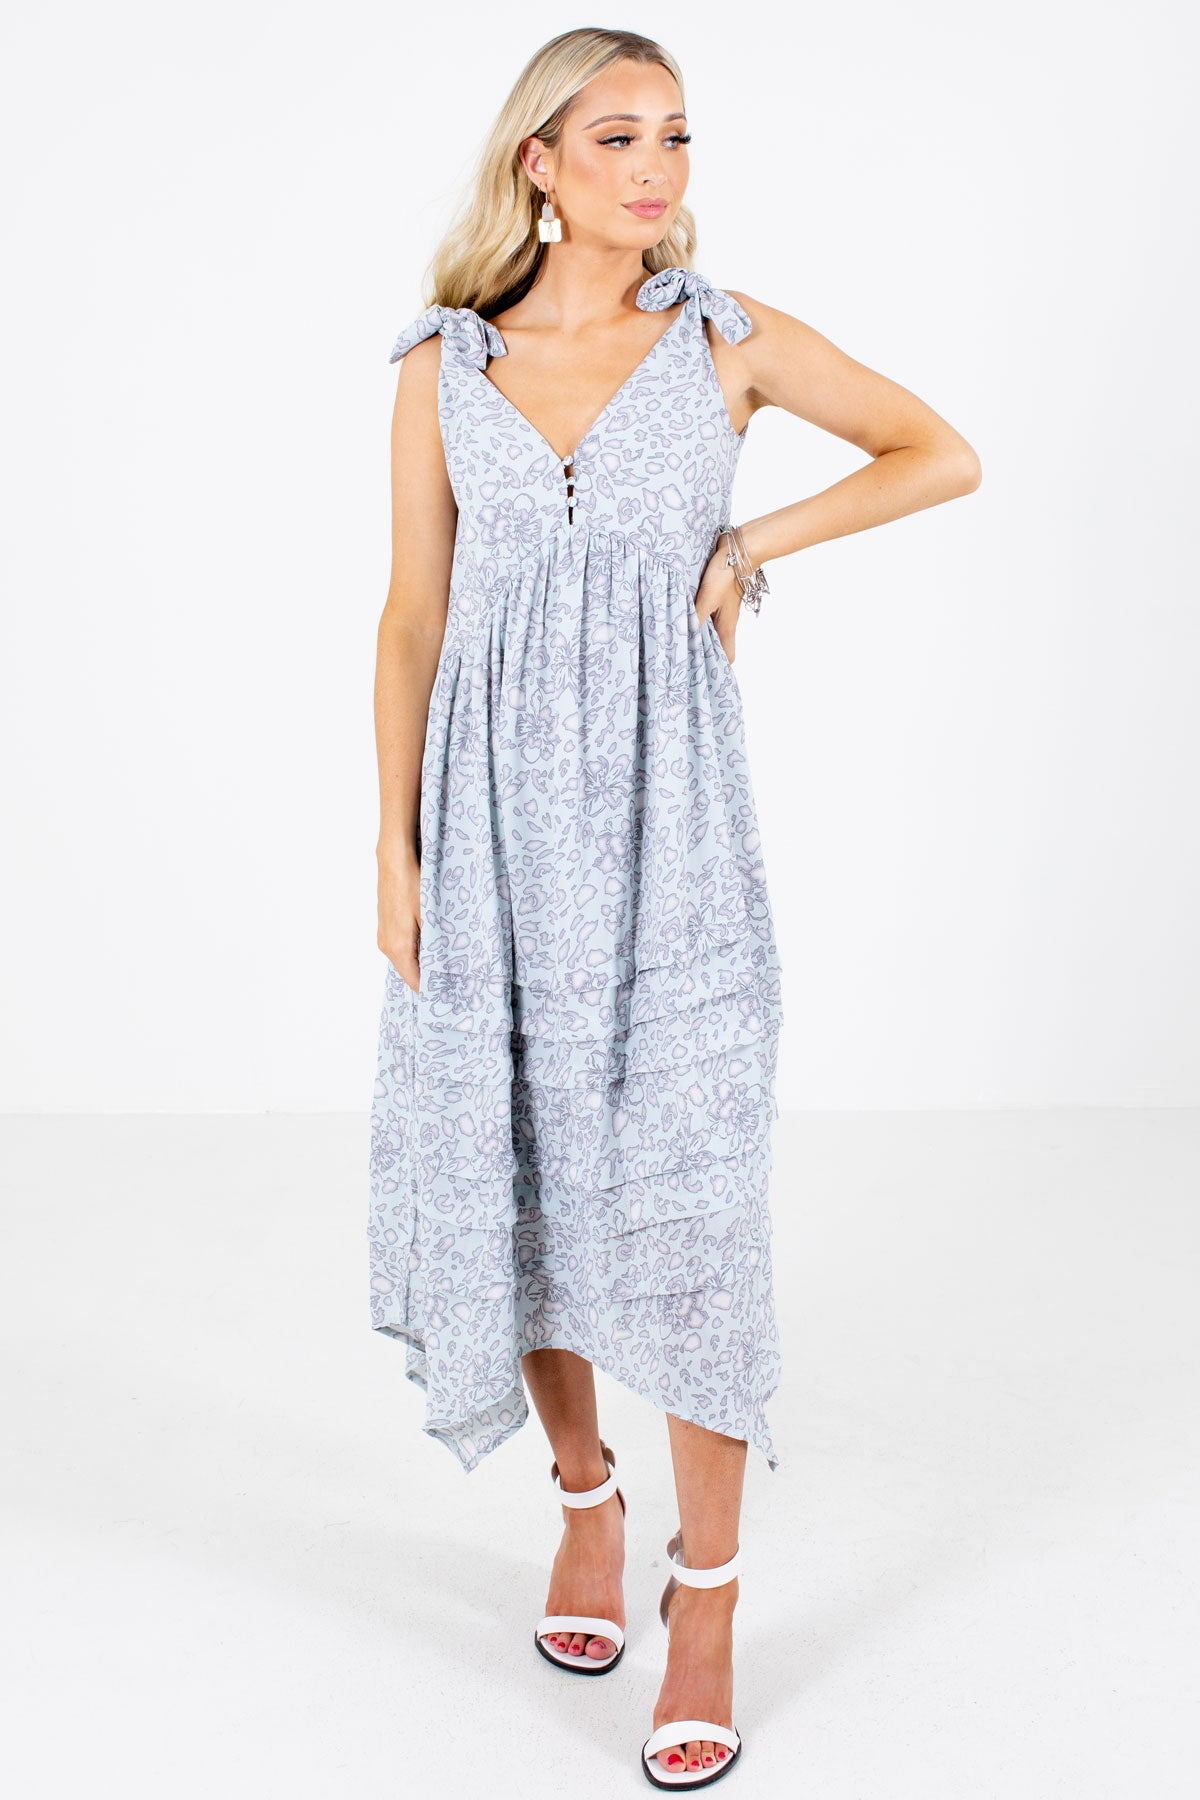 Sage Unique Floral Patterned Boutique Midi Dresses for Women